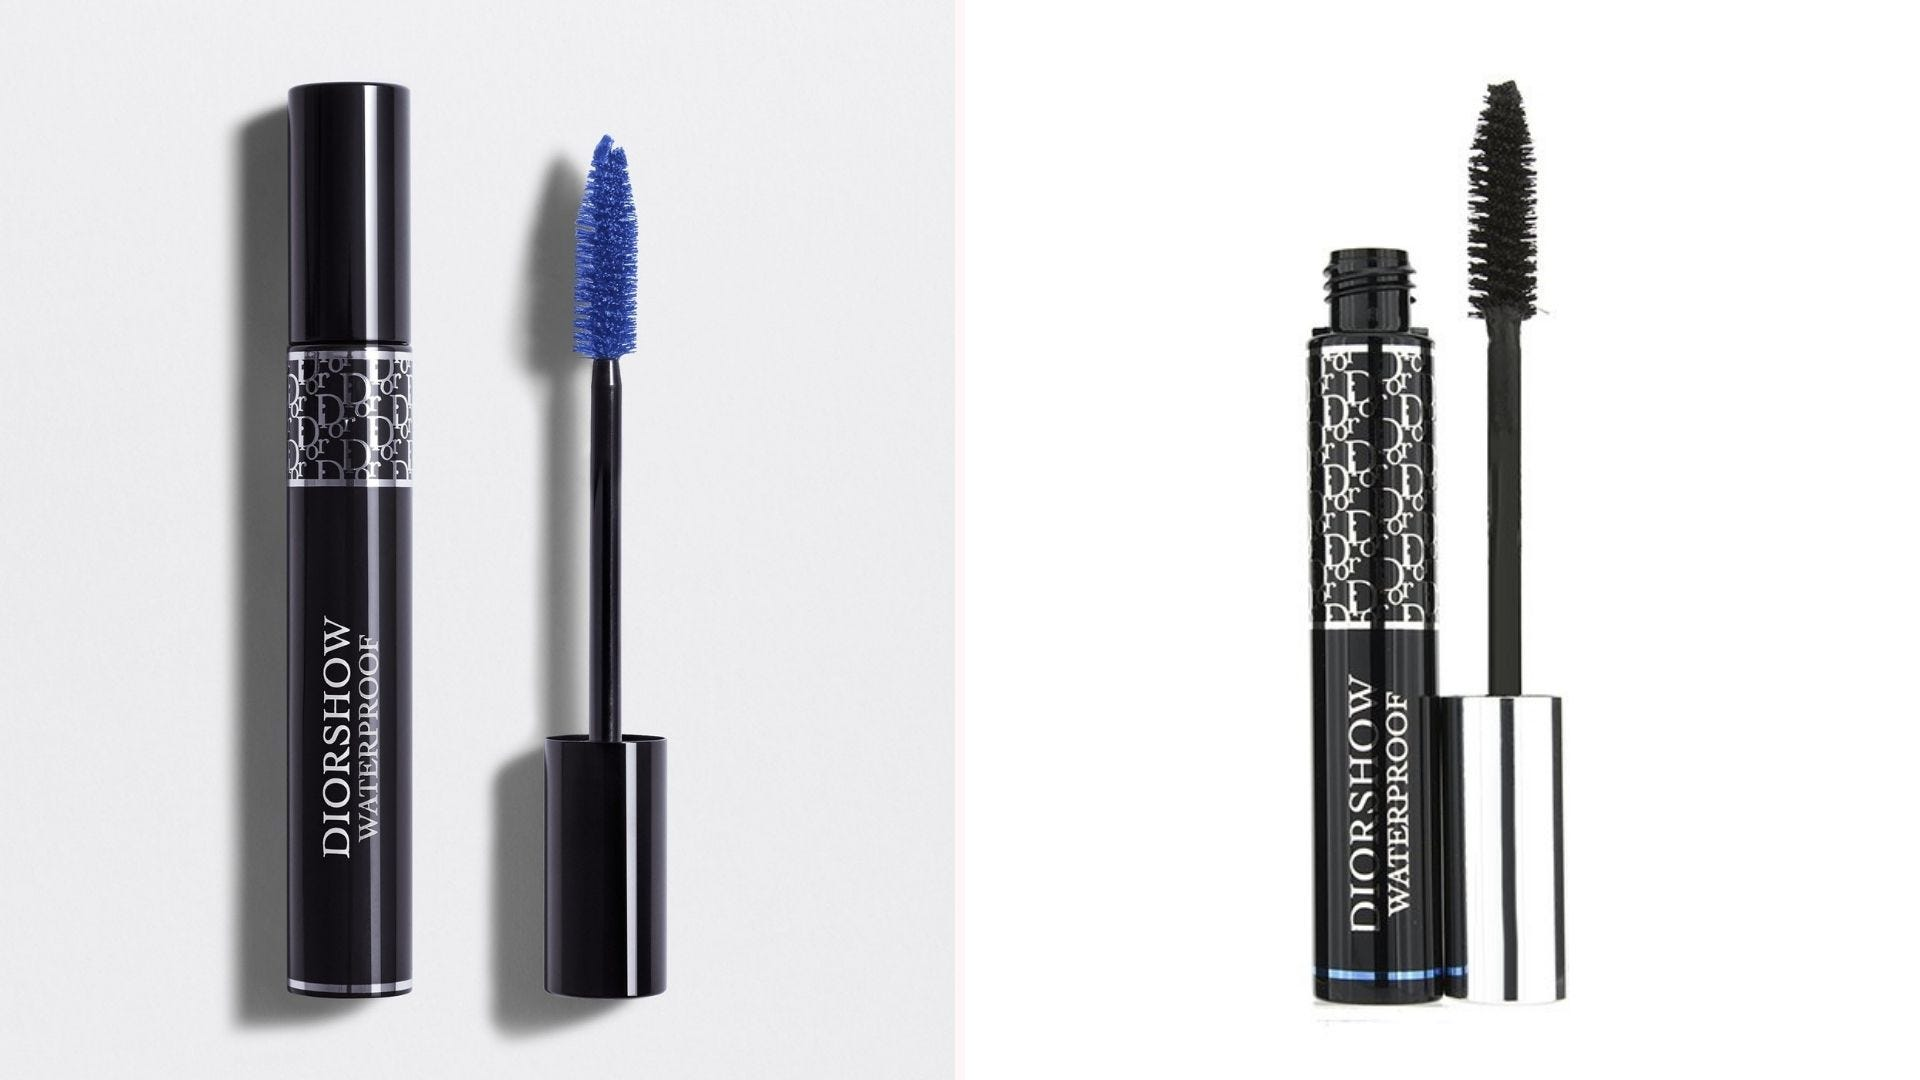 Two open tubes of mascara: one with blue on the wand, one with black